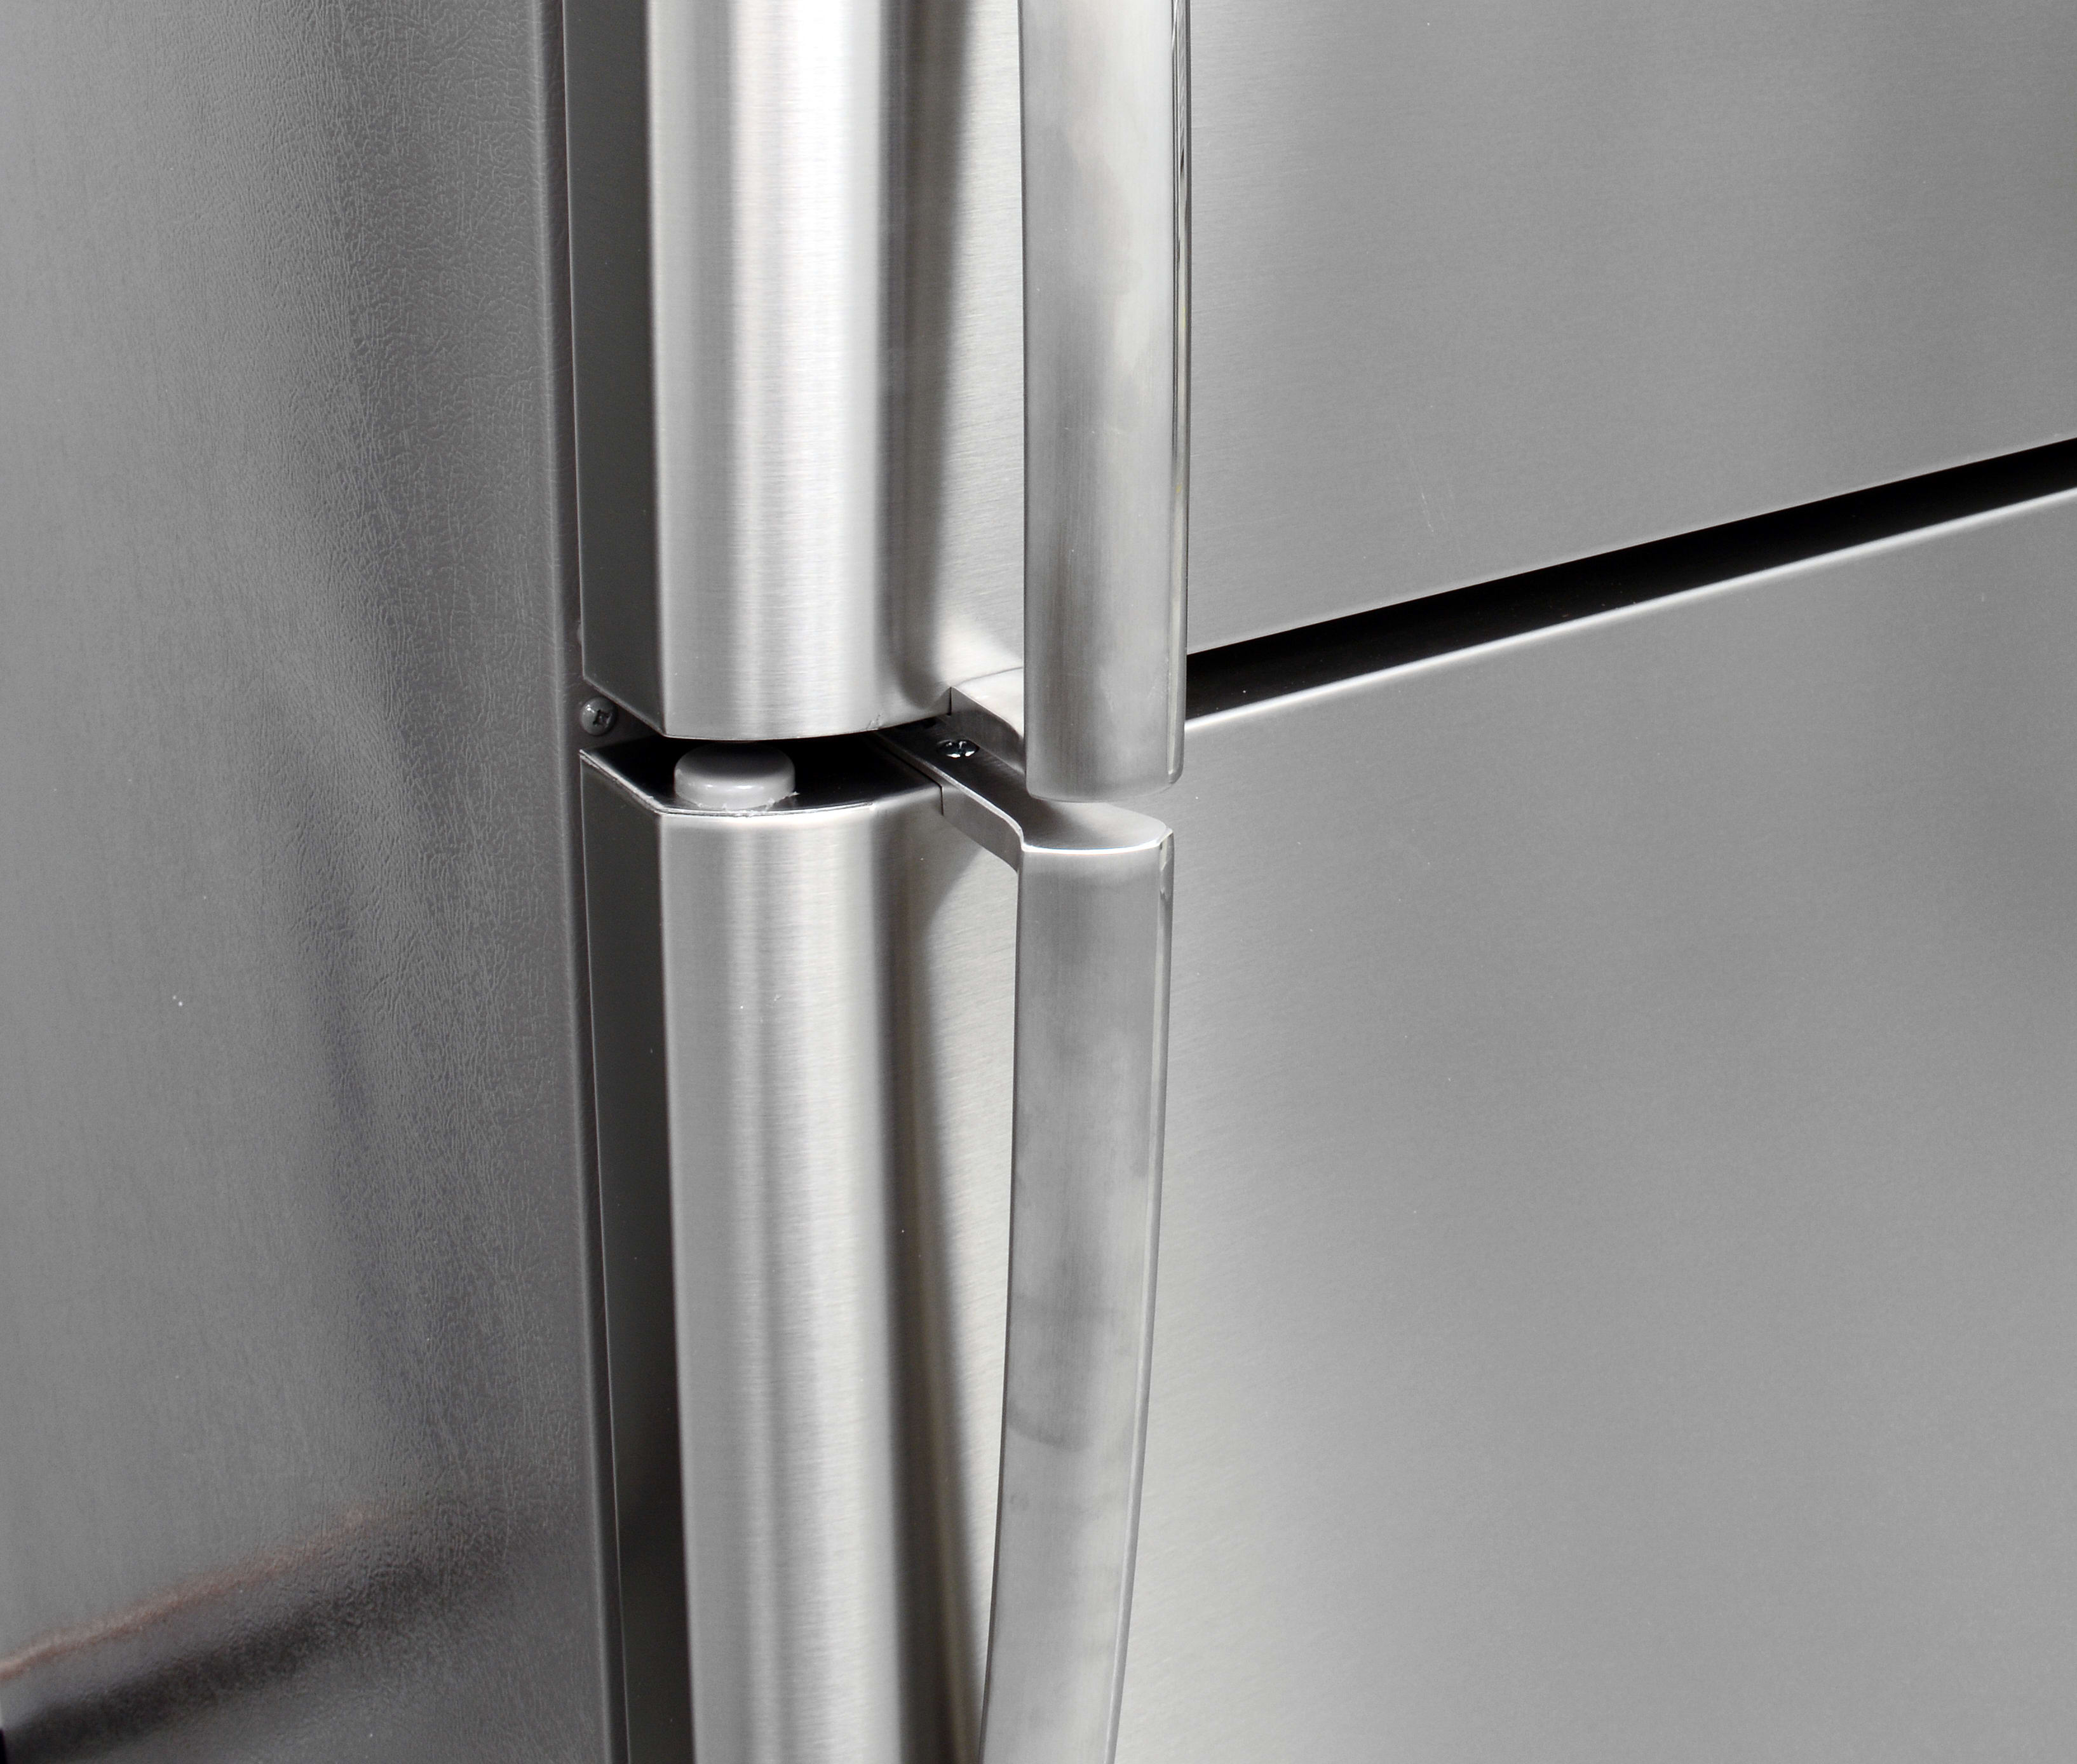 Frigidaire uses a special smudge-proof finish for the doors and handles on the Gallery FGHT2046QF.